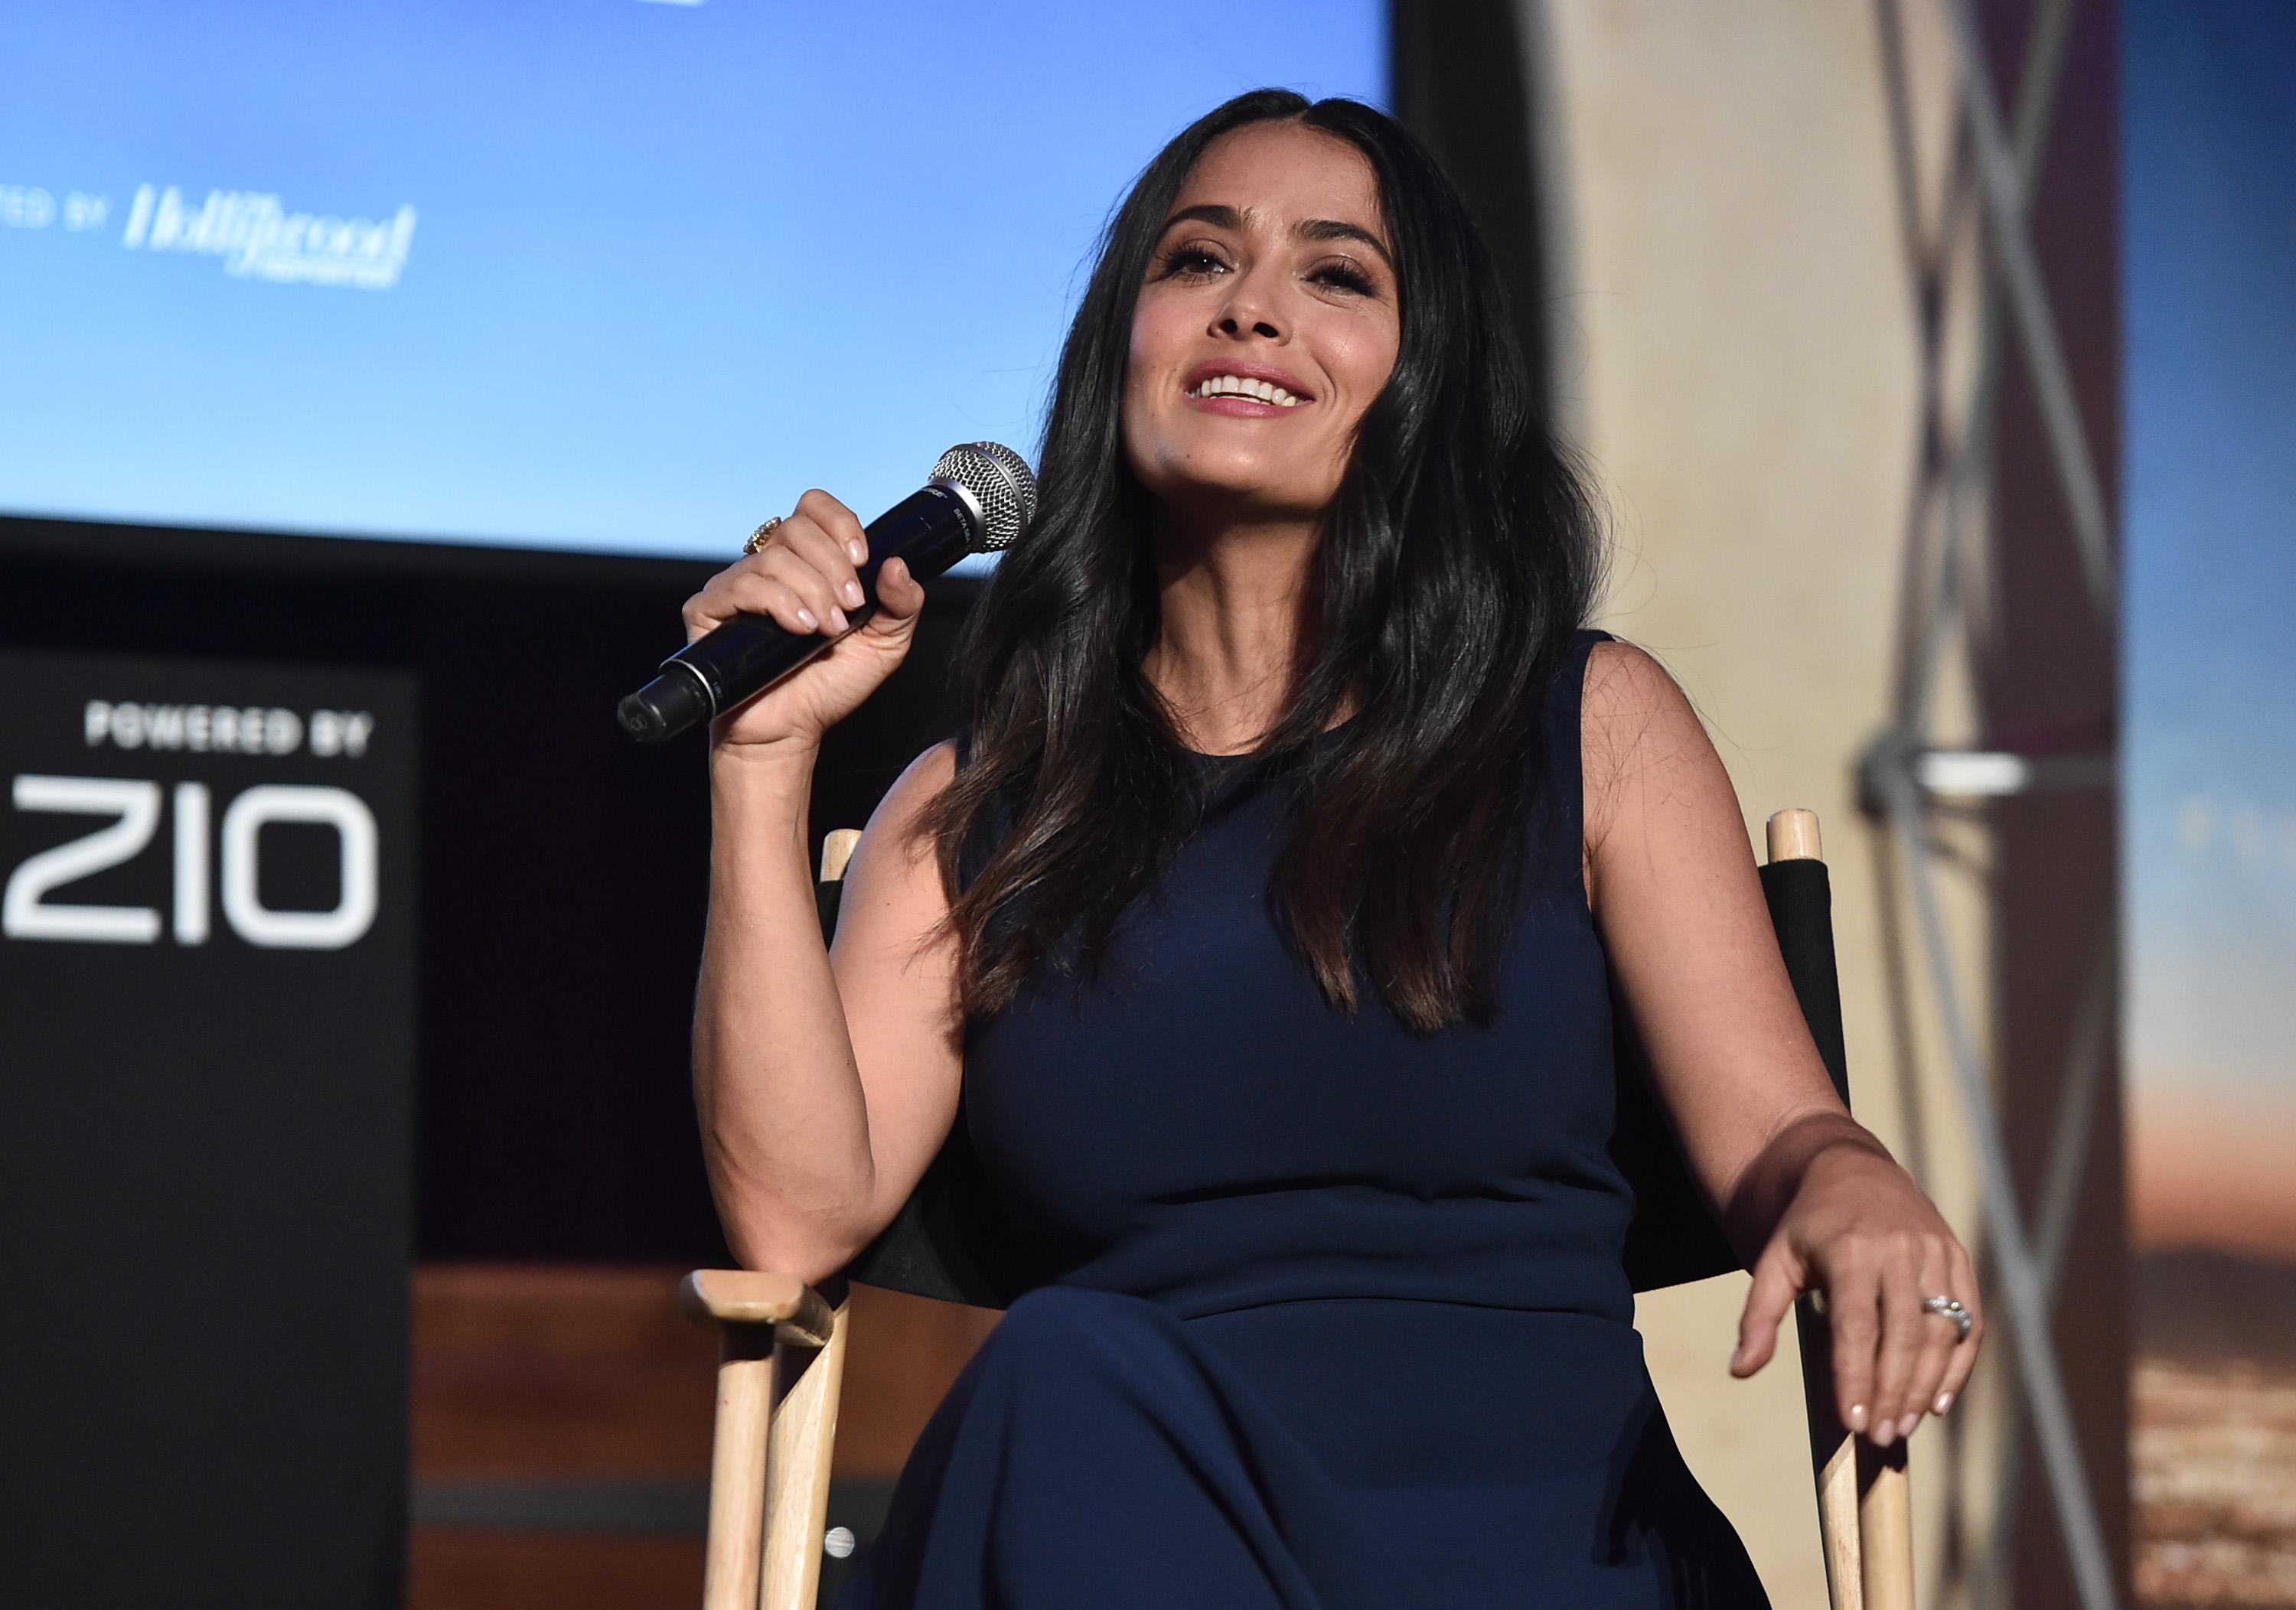 15 Years Later, Salma Hayek Reflects on Producing 'Frida' and Showing a Different Side of Mexico